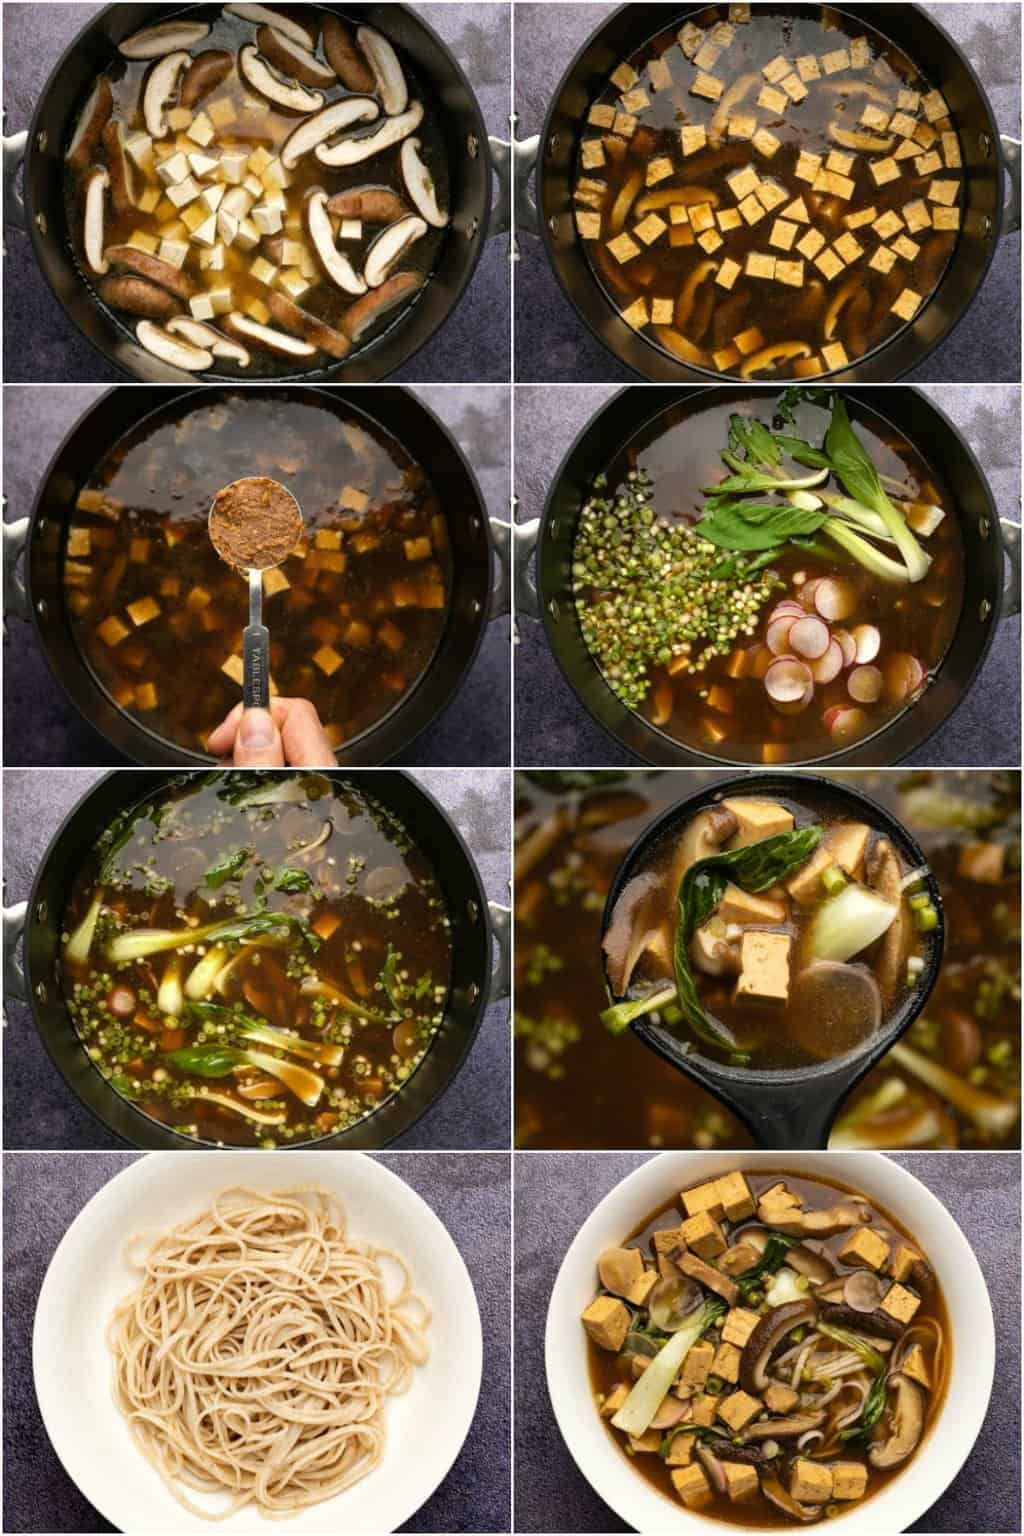 Step by step process photo collage of making vegan ramen.